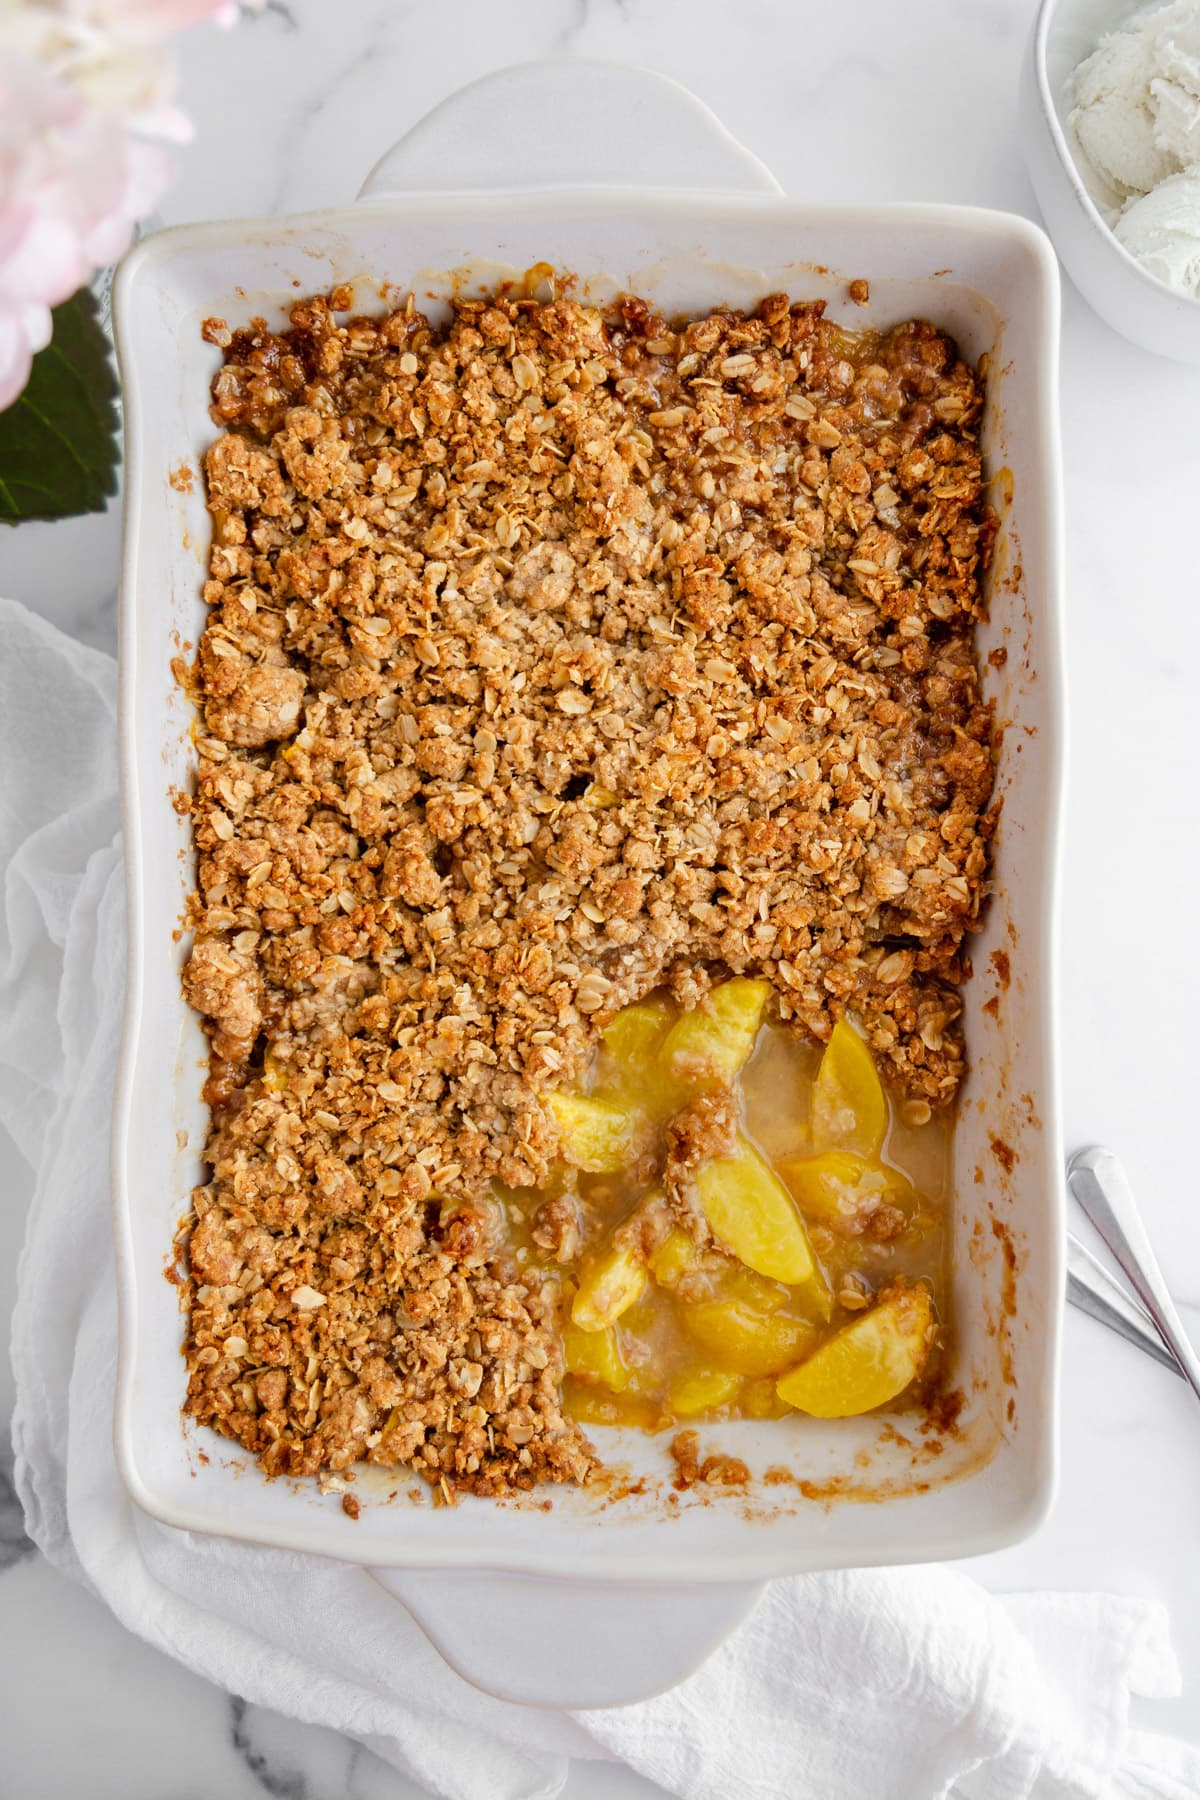 peach crisp with a crunchy oat topping in a baking dish with a scoop taken out